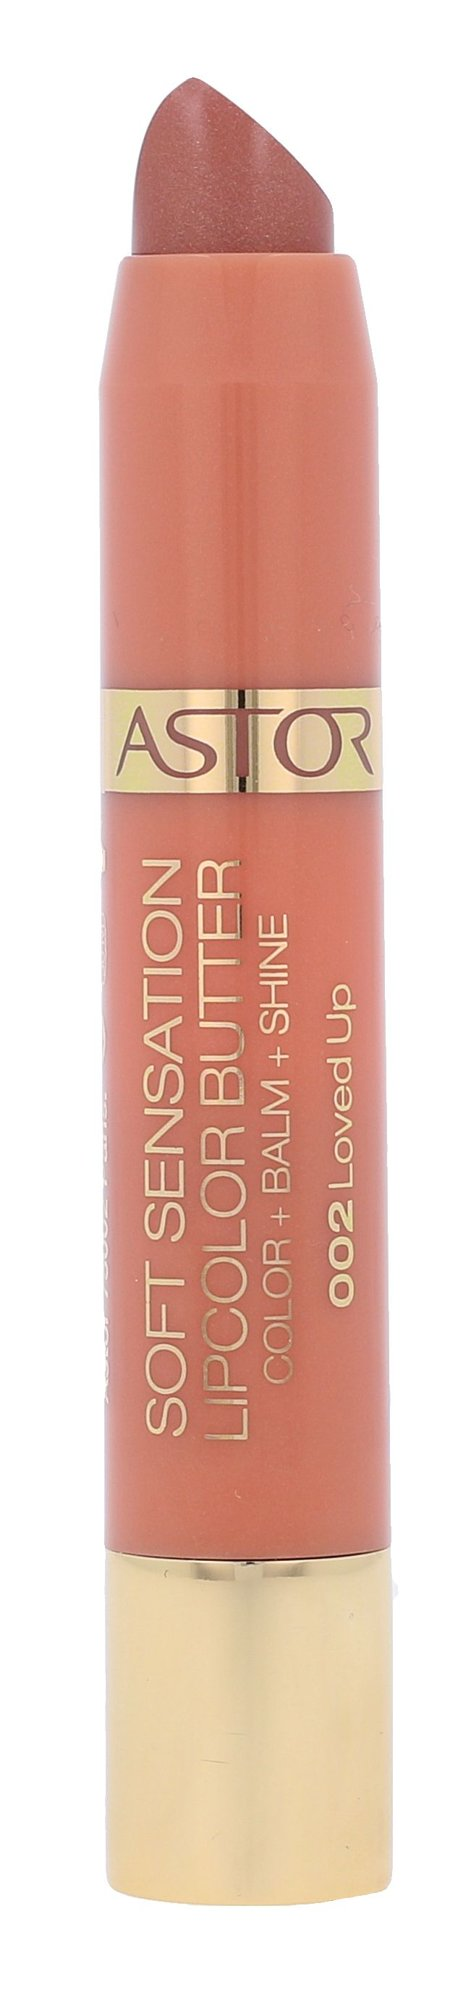 ASTOR Soft Sensation Cosmetic 4,8ml 002 Loved Up